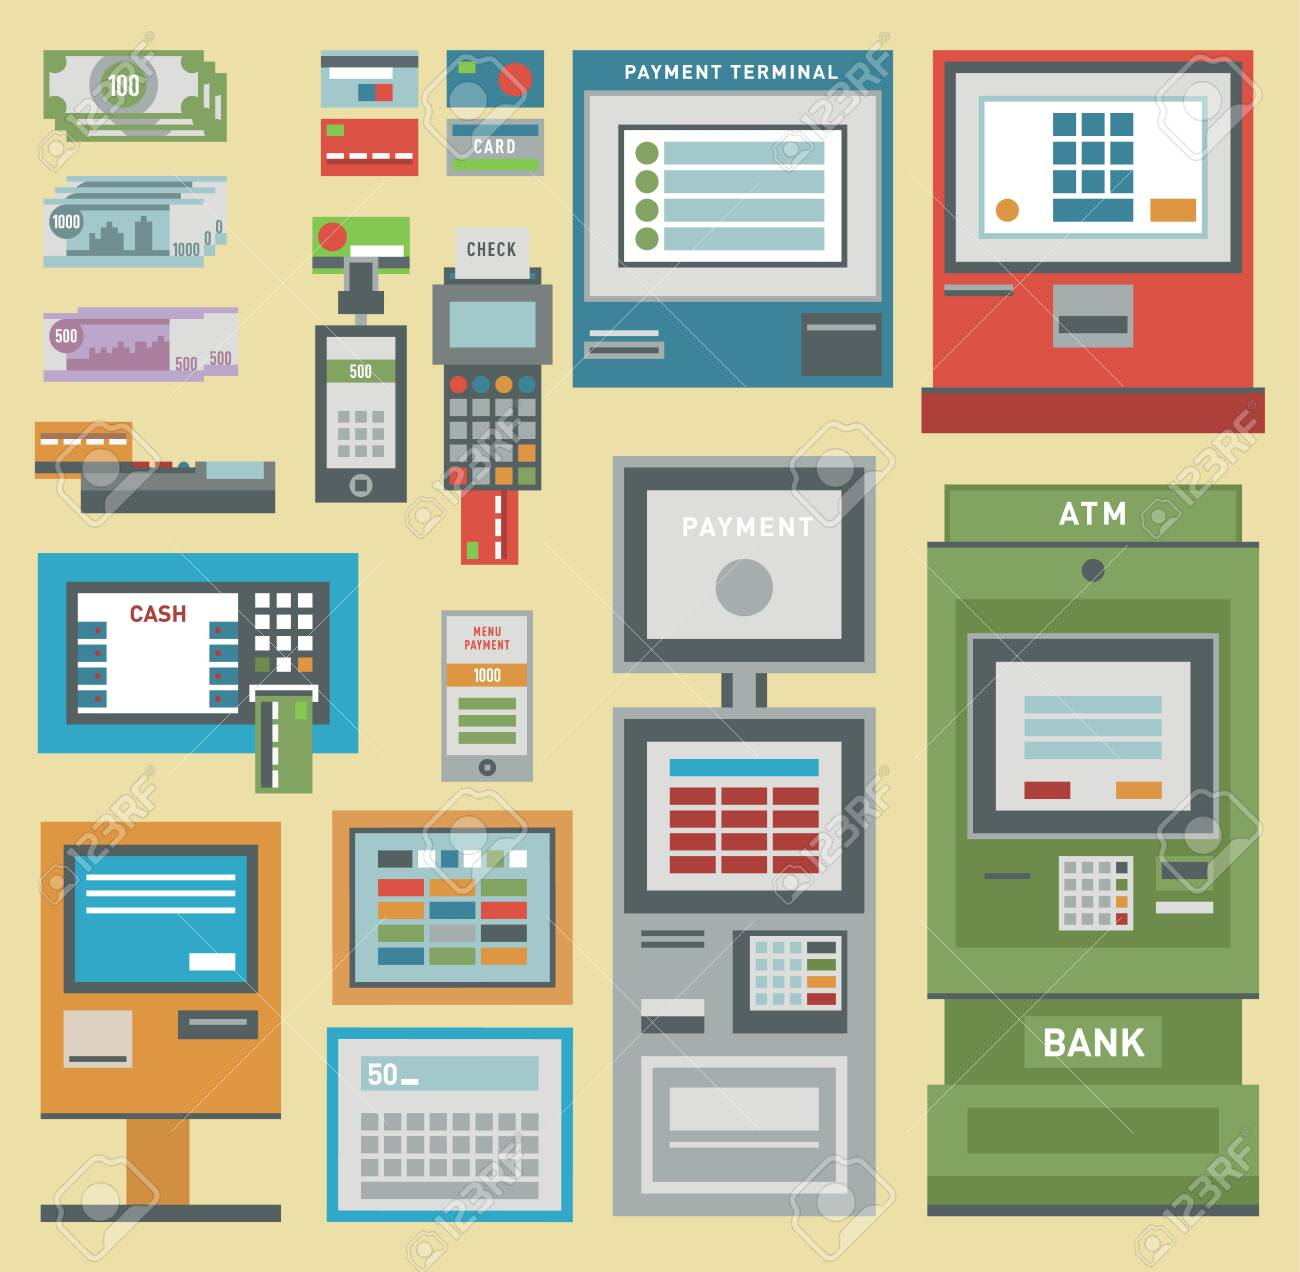 ATM money pos-terminal hand credit card icons. - 126978260